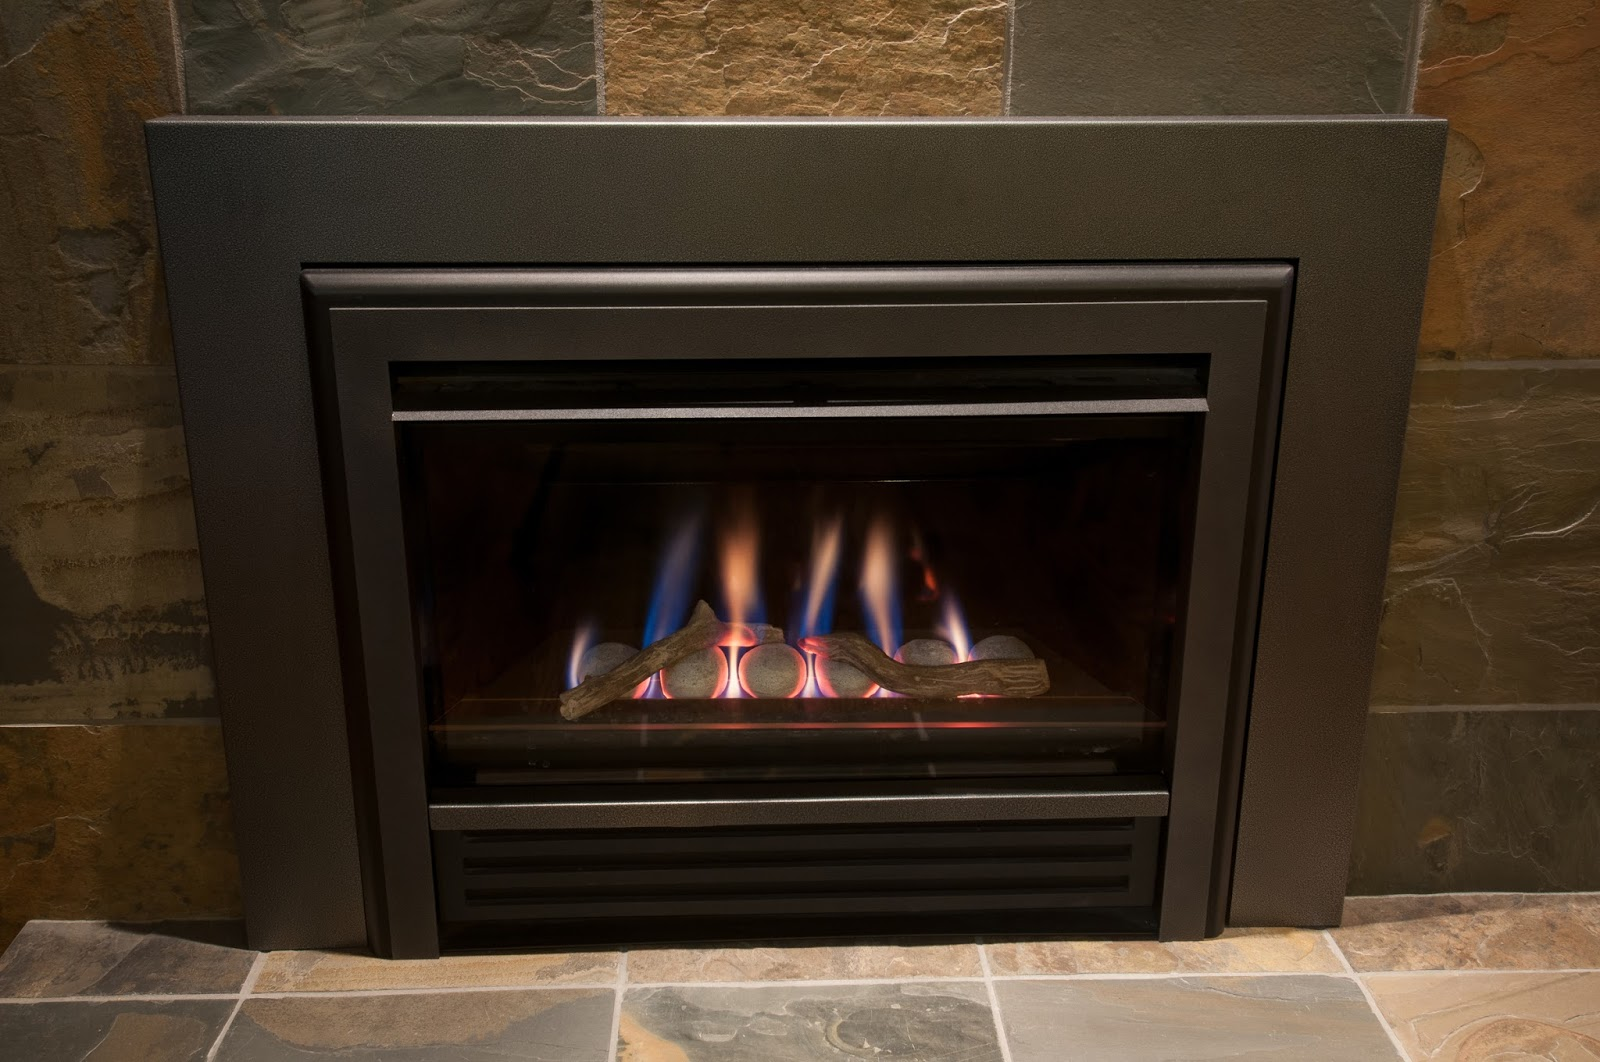 Majestic Gas Fireplace Repair In, Electric Fireplace Repair Services